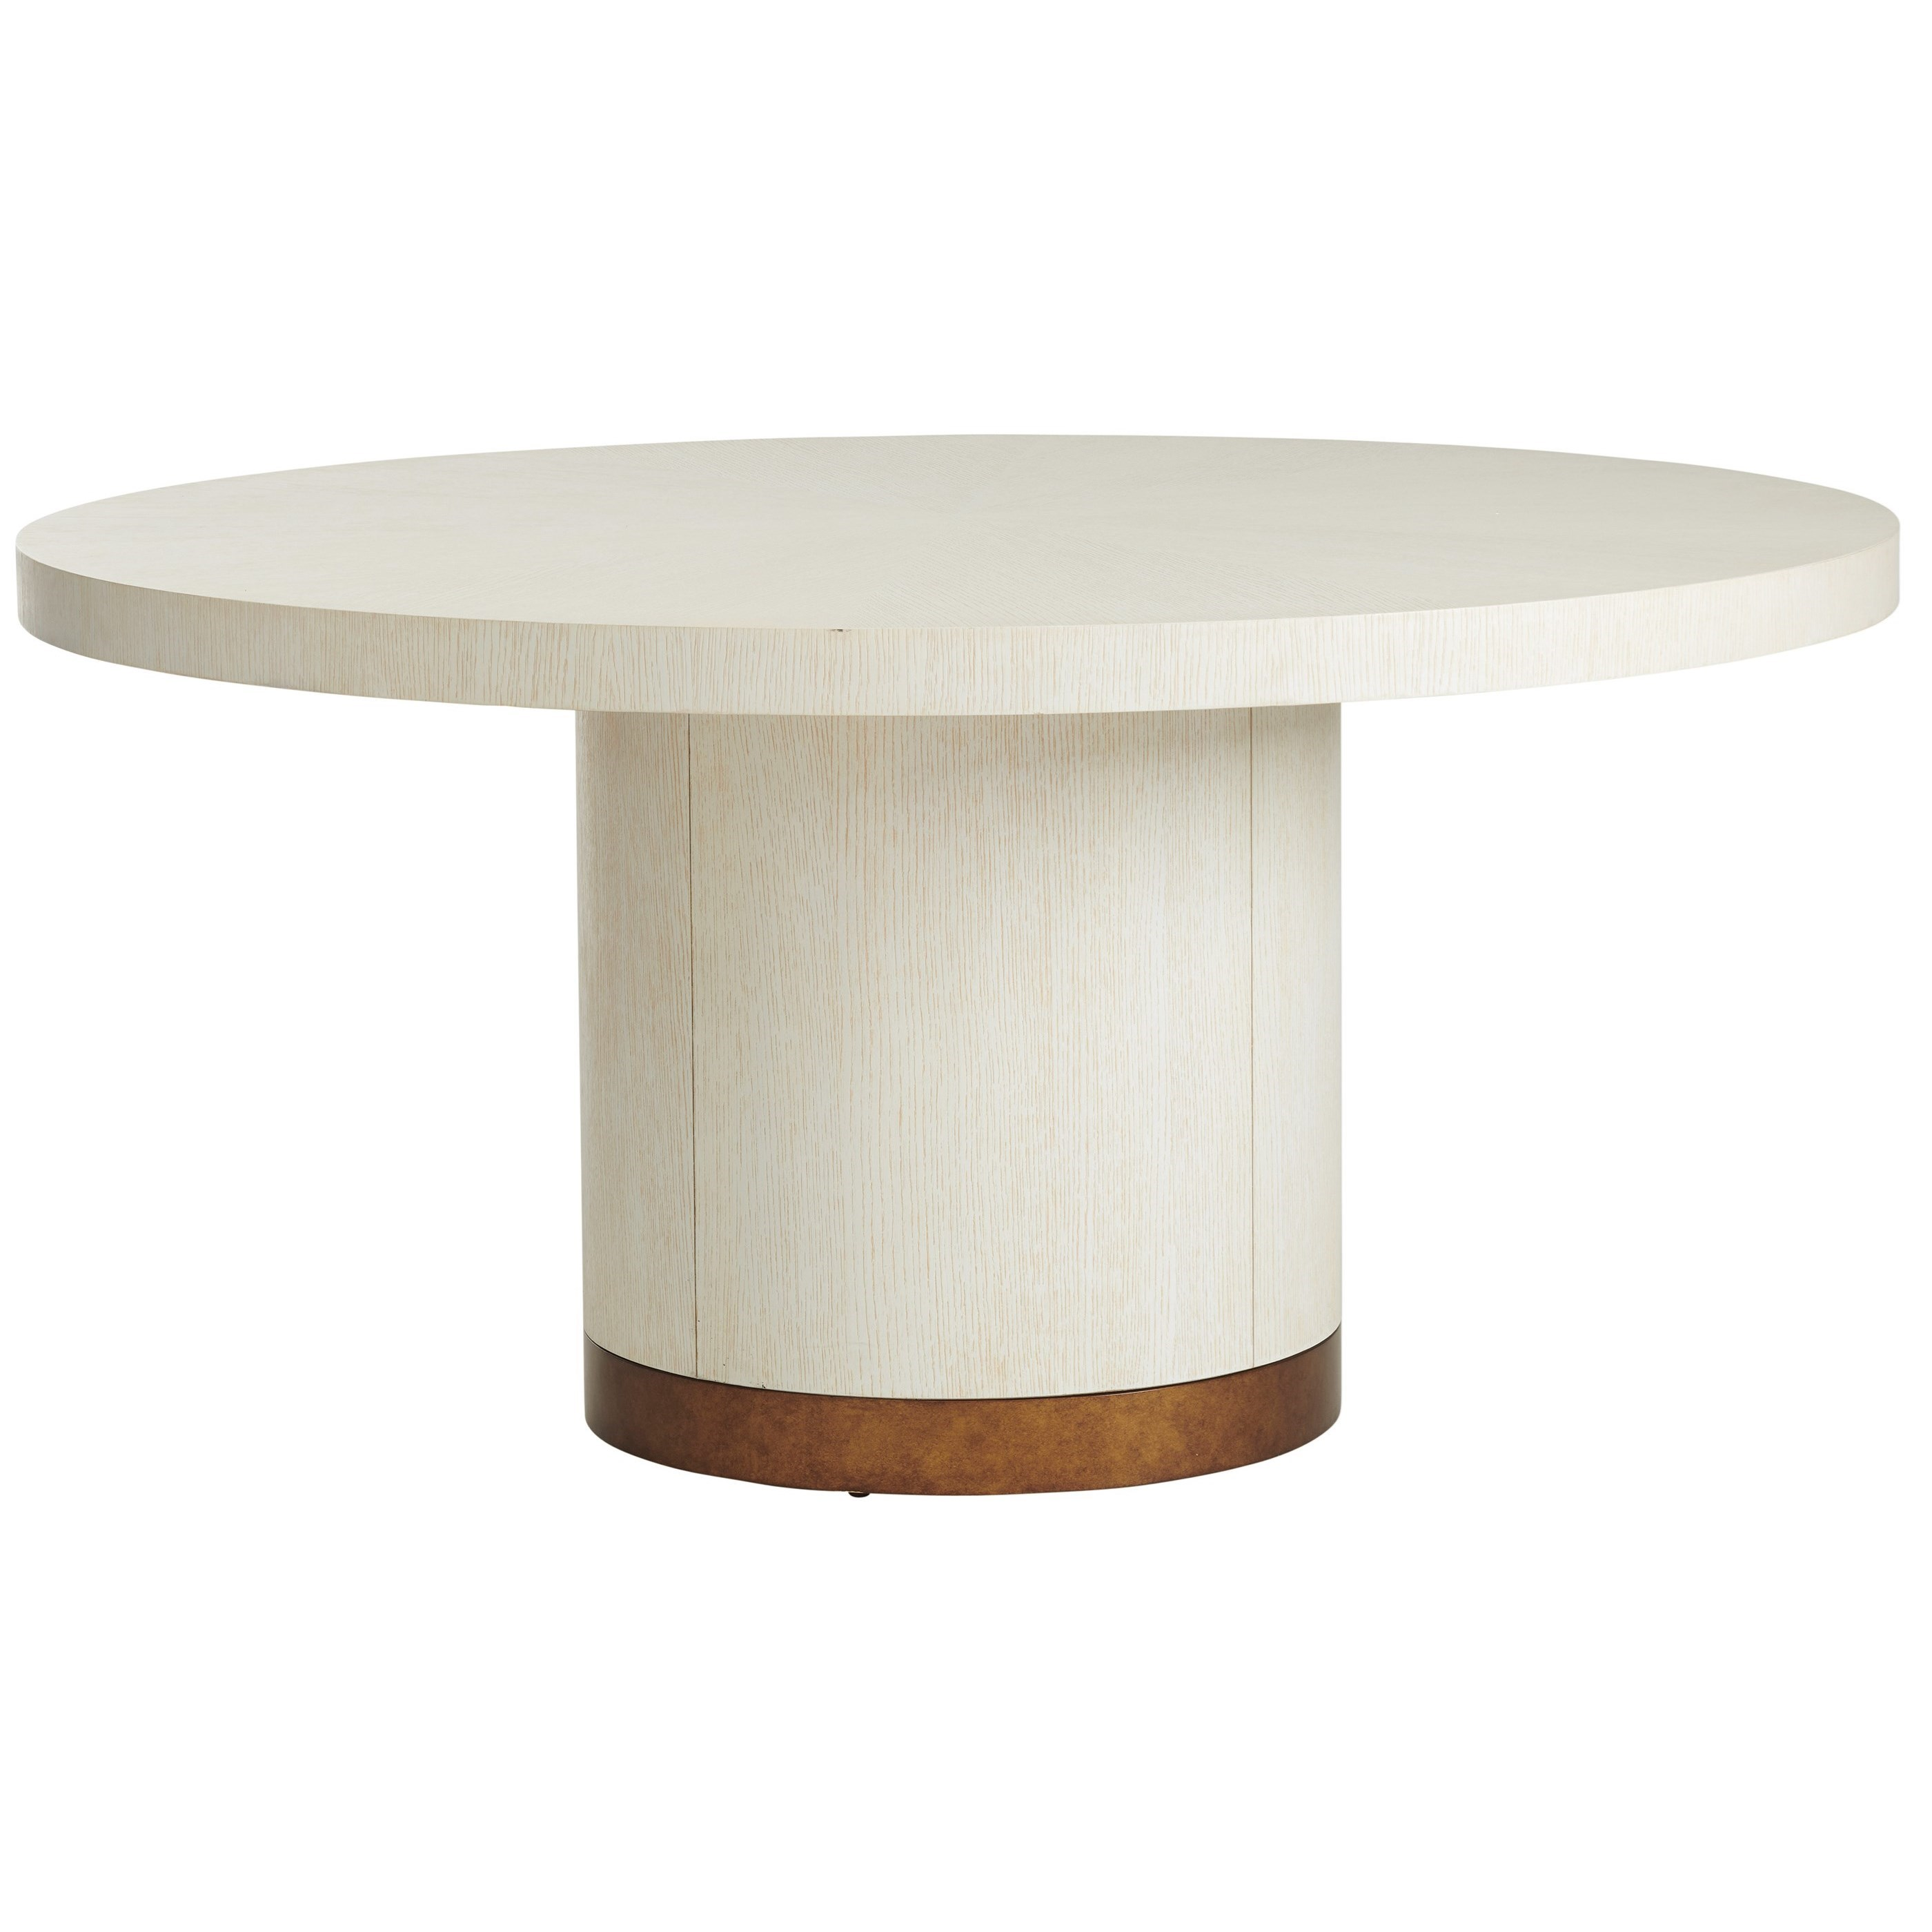 Carmel Selfridge Round Dining Table by Barclay Butera at Baer's Furniture